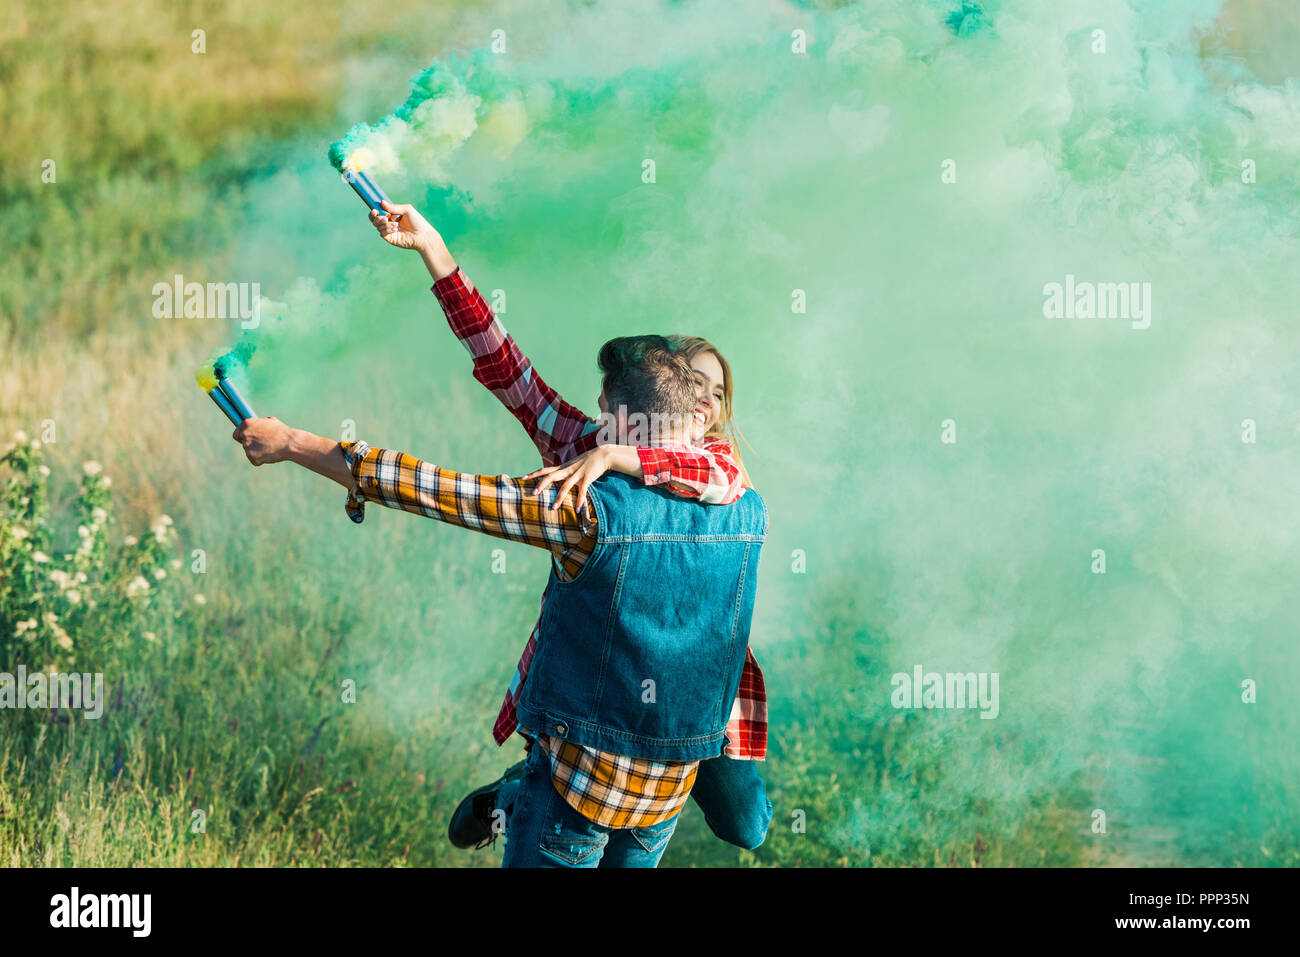 rear view of man holding girlfriend and green smoke bombs in field - Stock Image